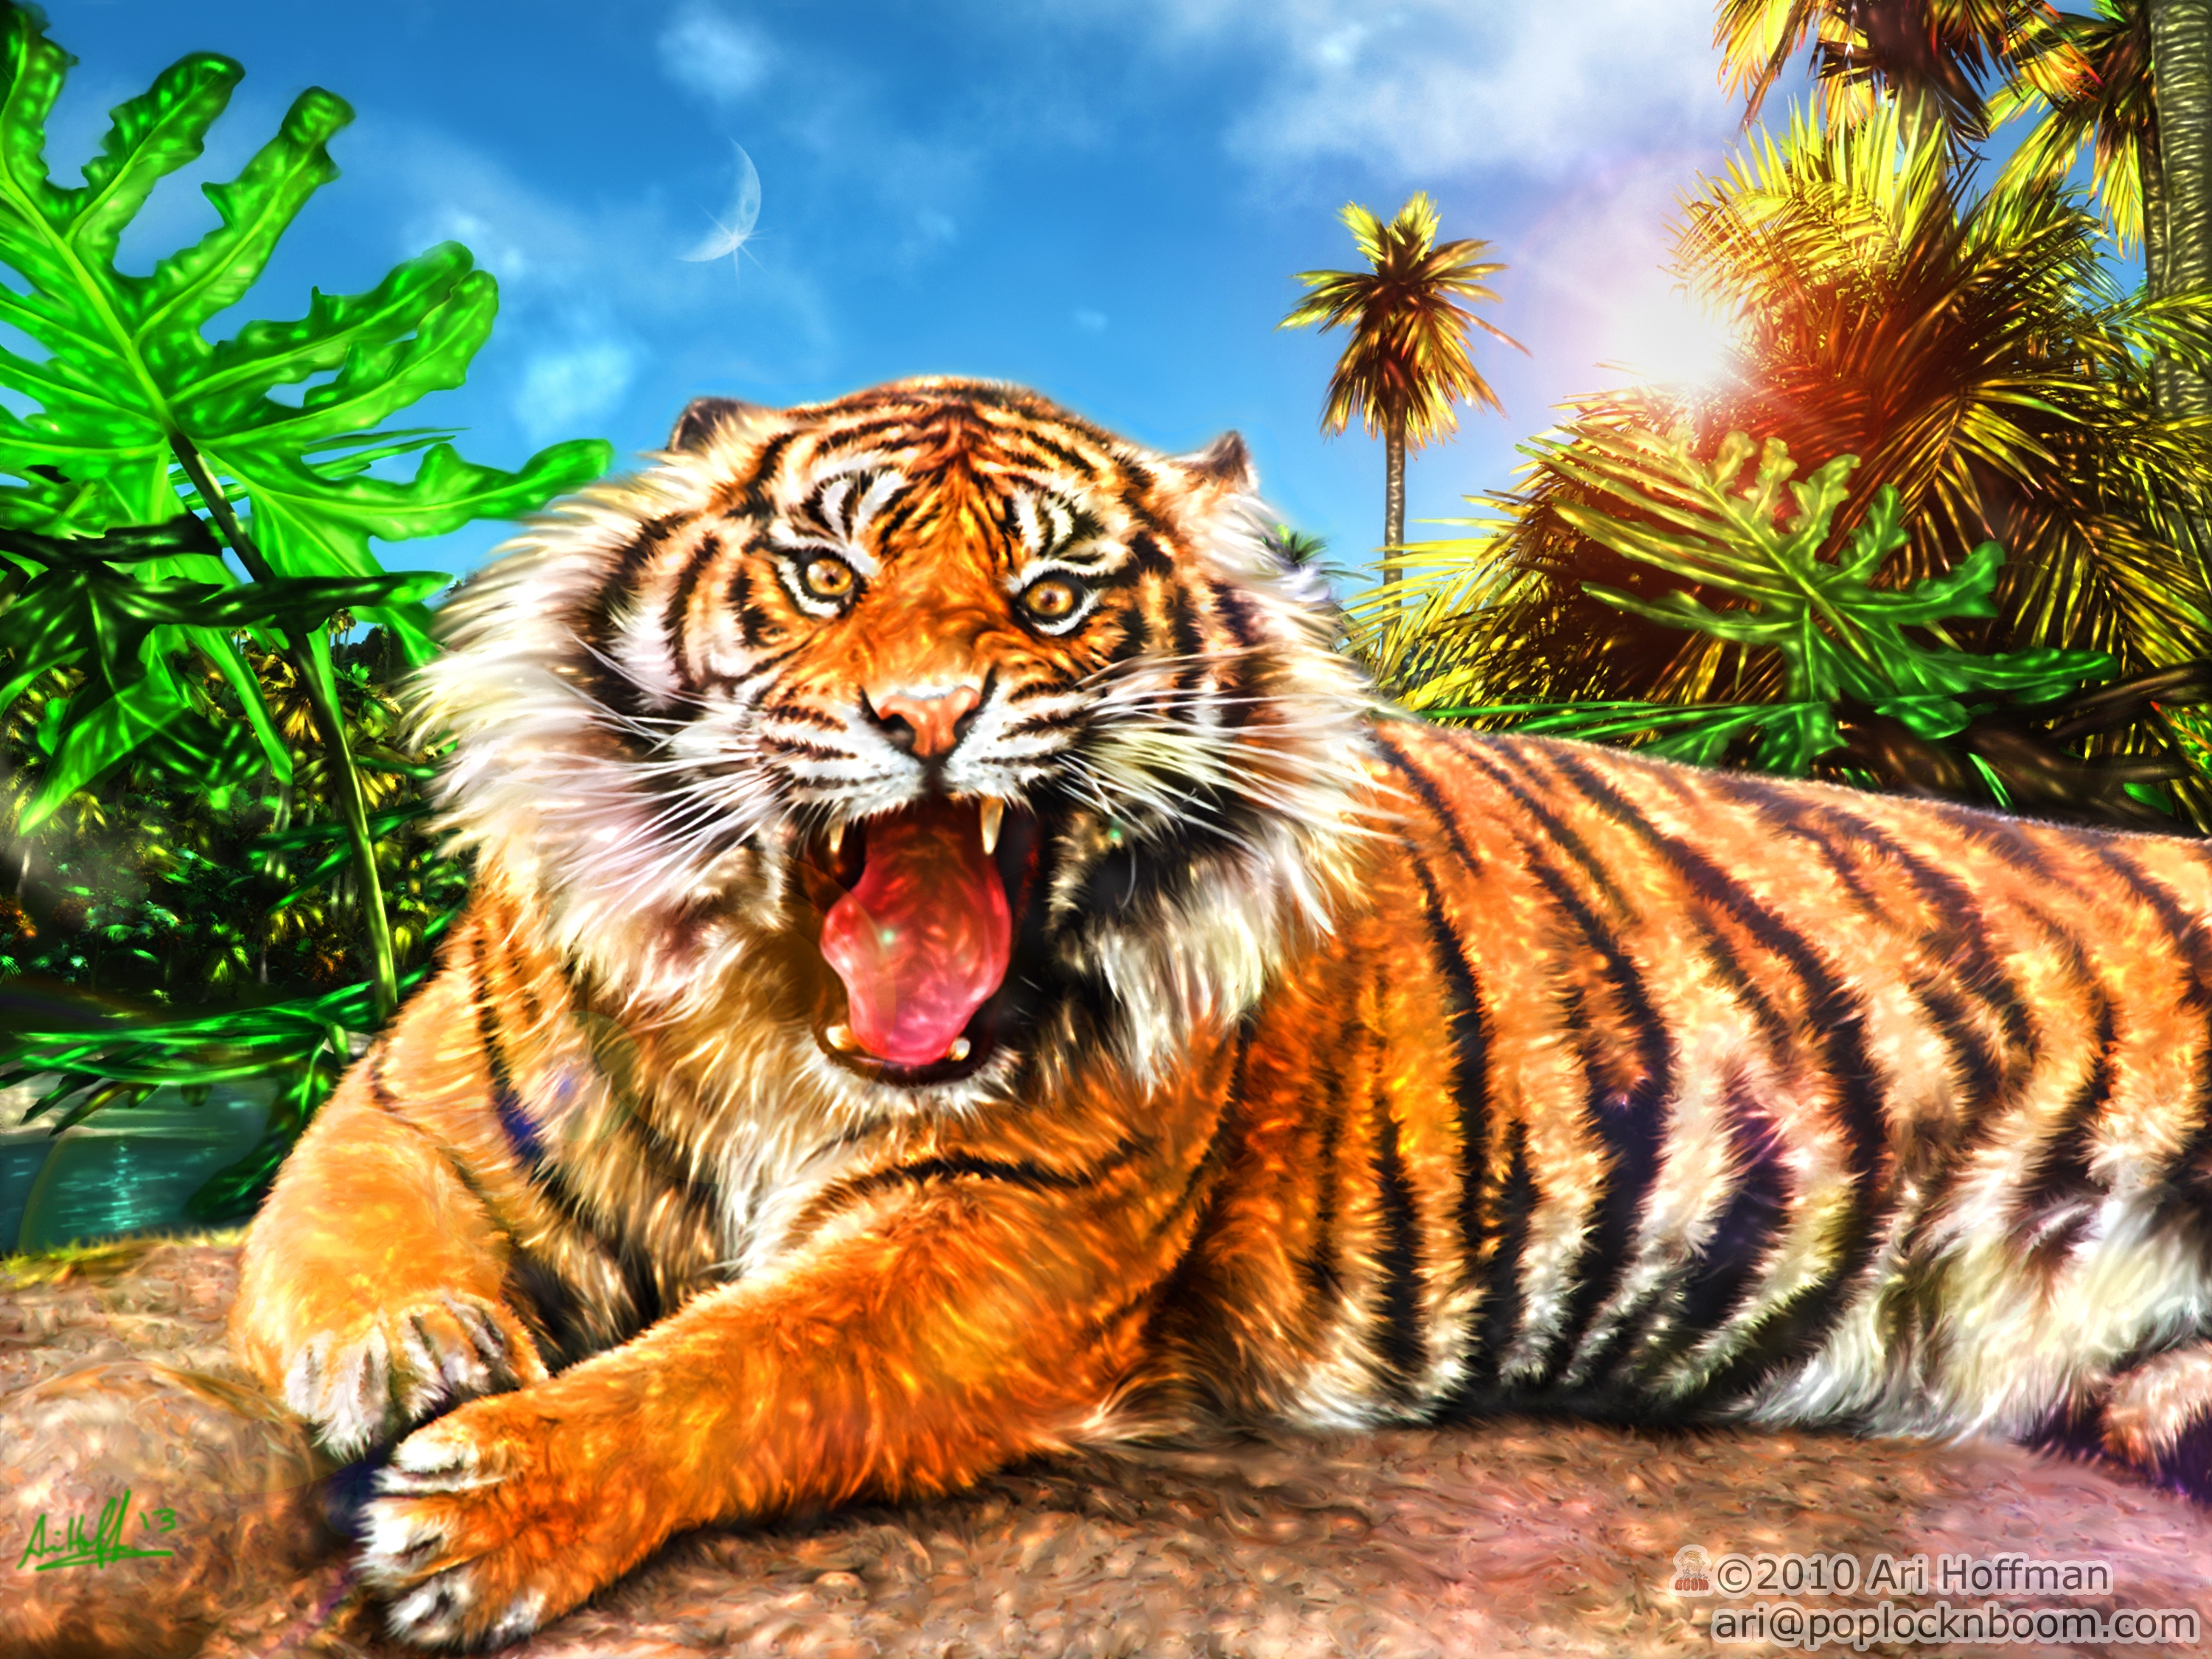 The Land Of The Tiger.... Art Work by arihoff